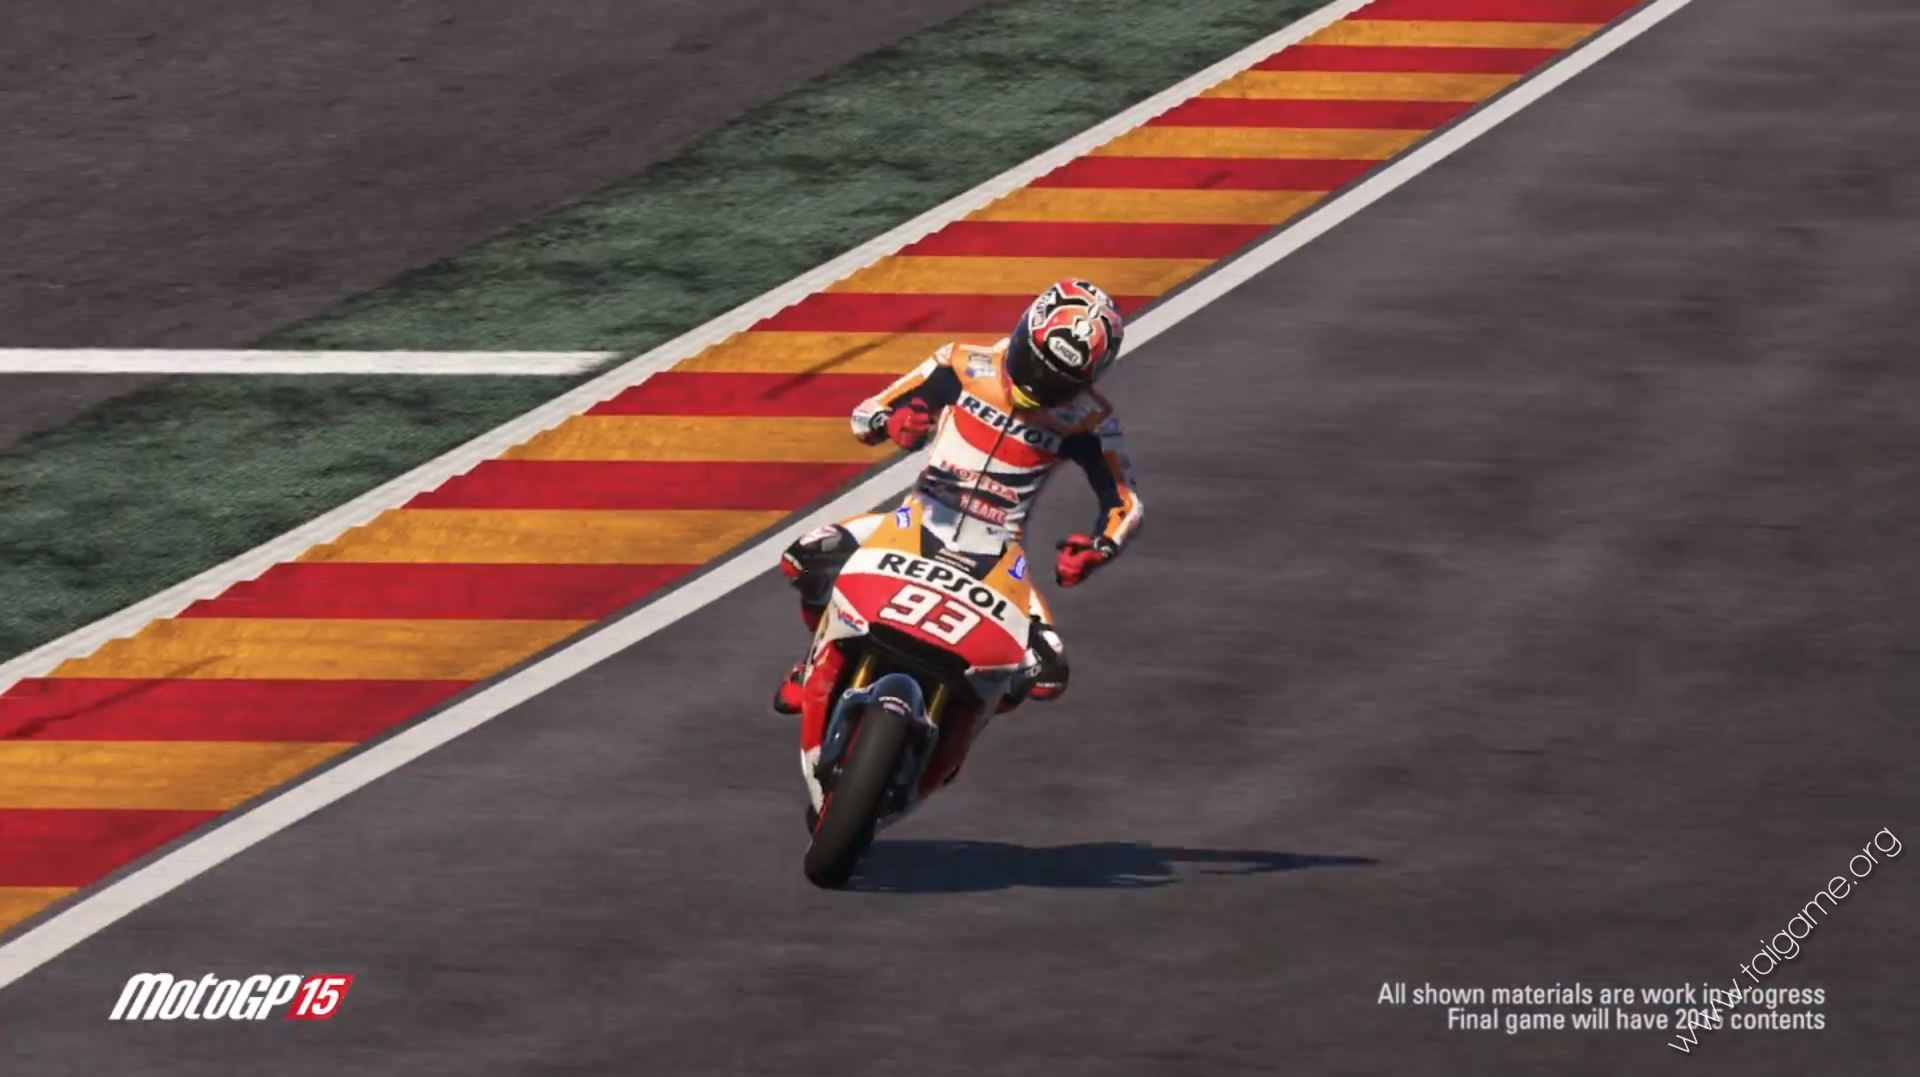 MotoGP 15 - Download Free Full Games | Racing games